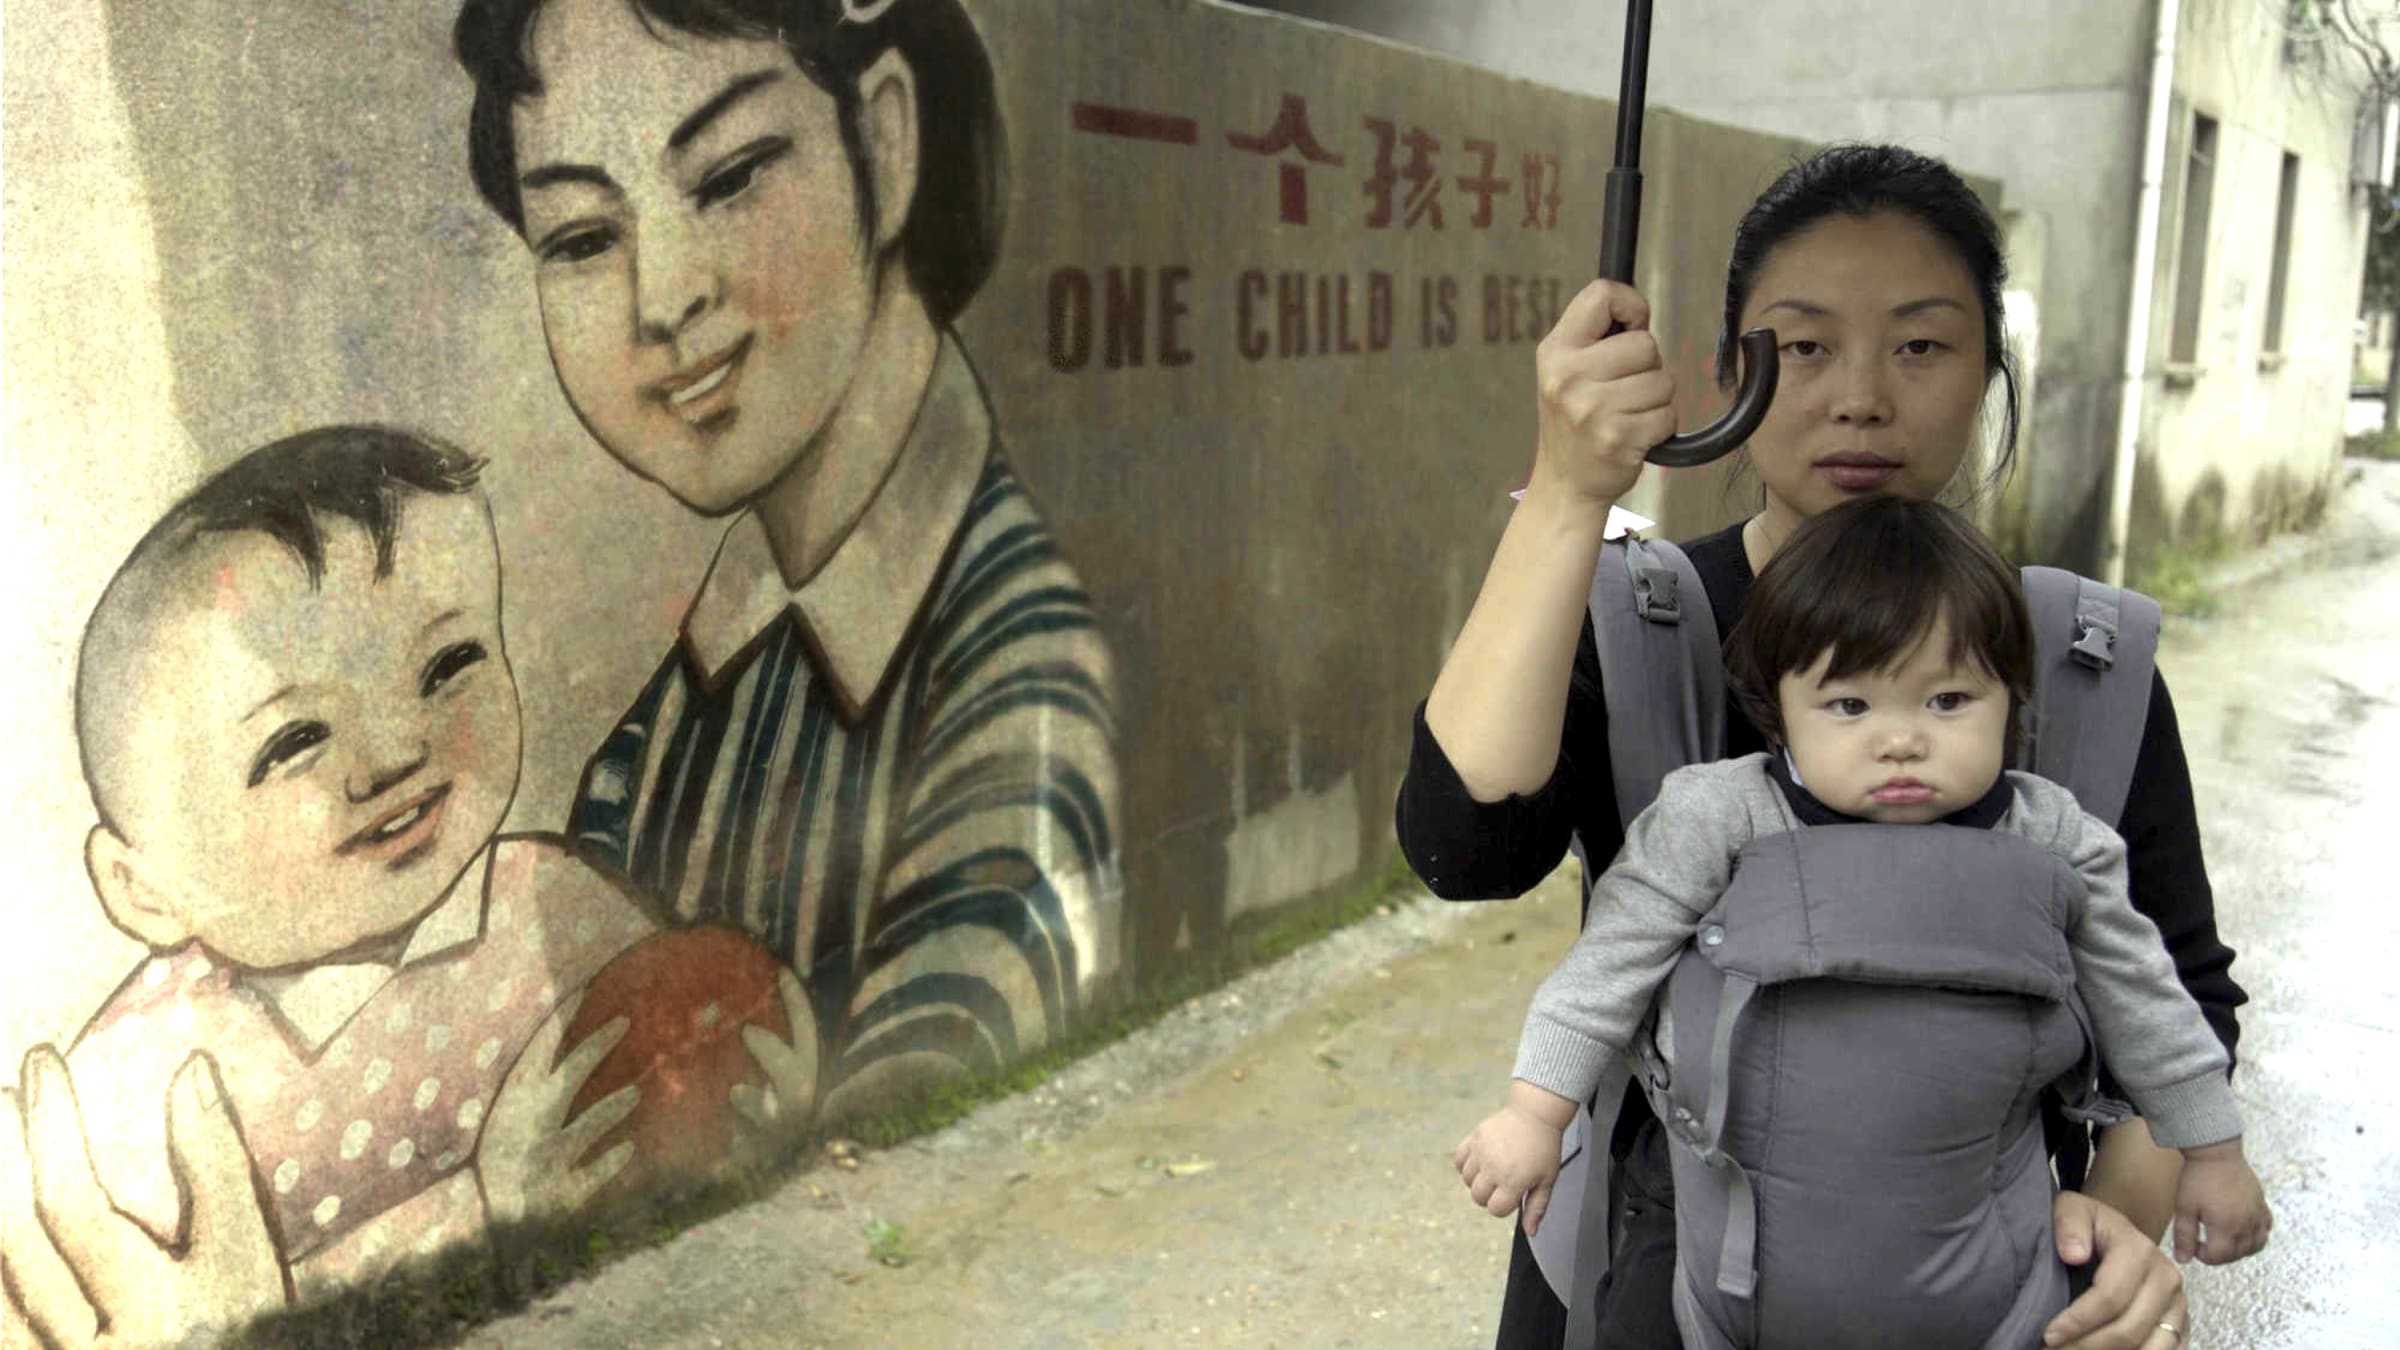 'One Child Nation': Inside China's Horrifying Child-Killing Policy